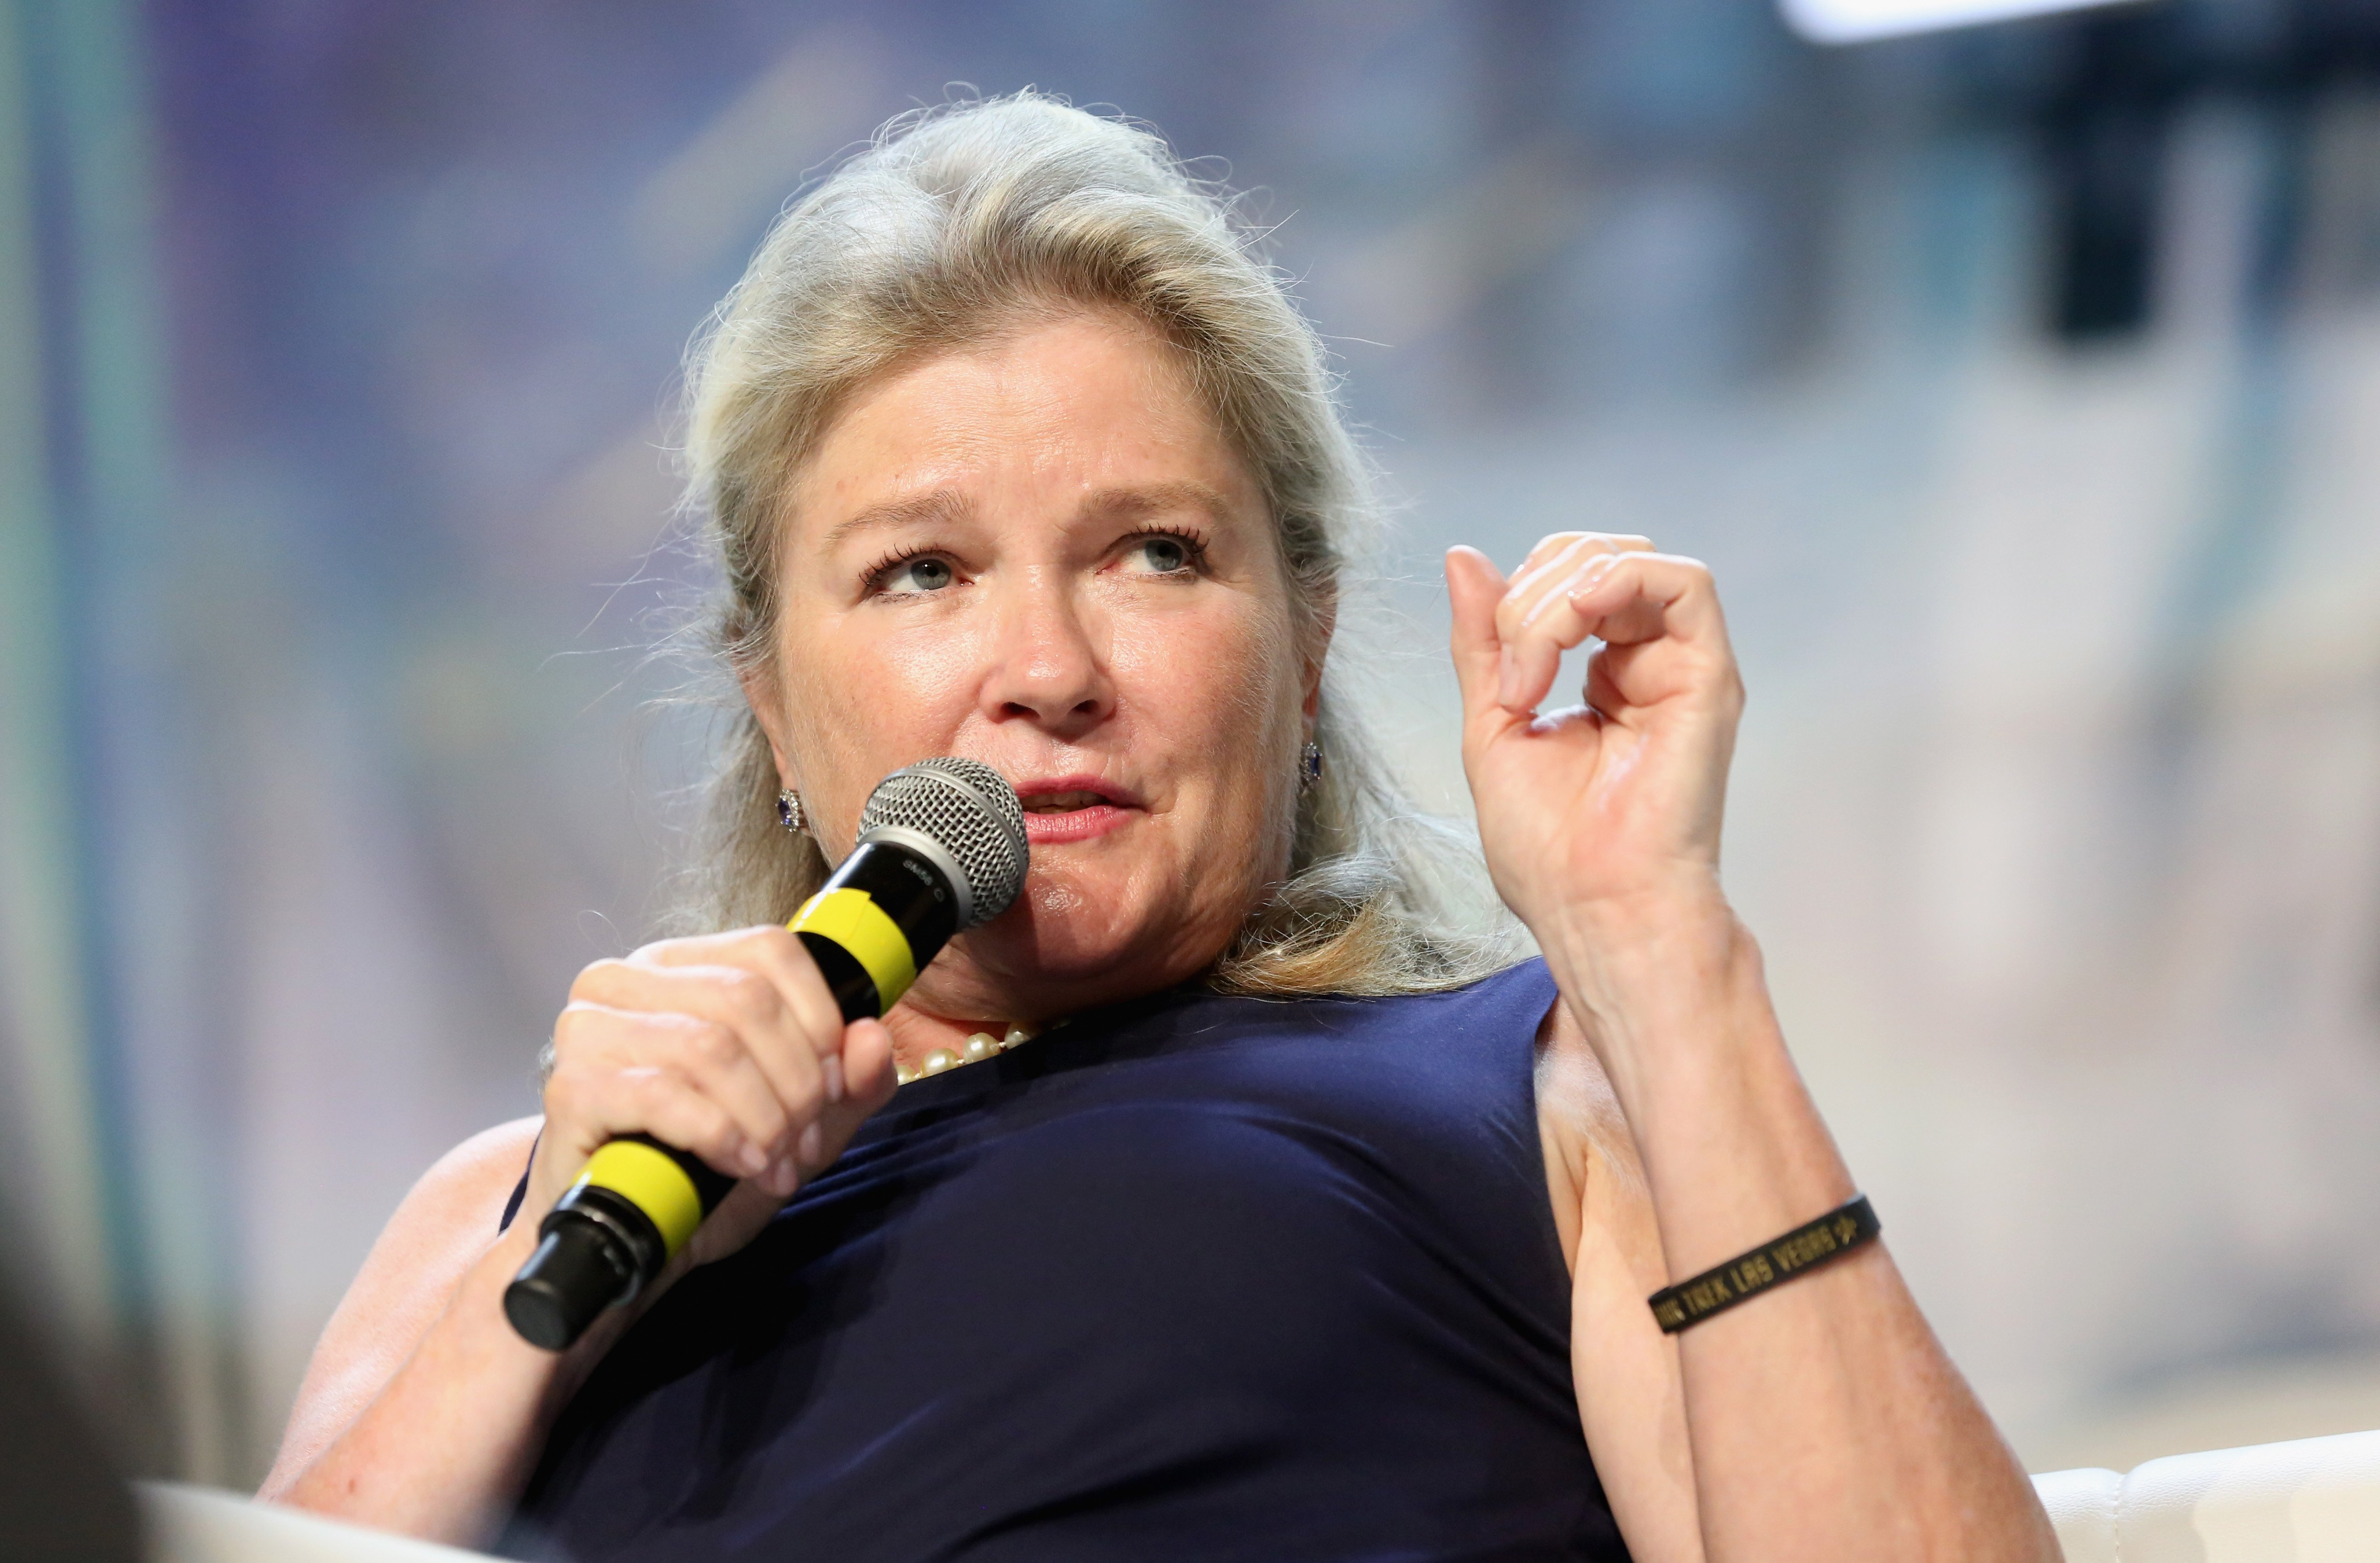 Kate Mulgrew on August 4, 2018 in Las Vegas, Nevada | Photo: Getty Images